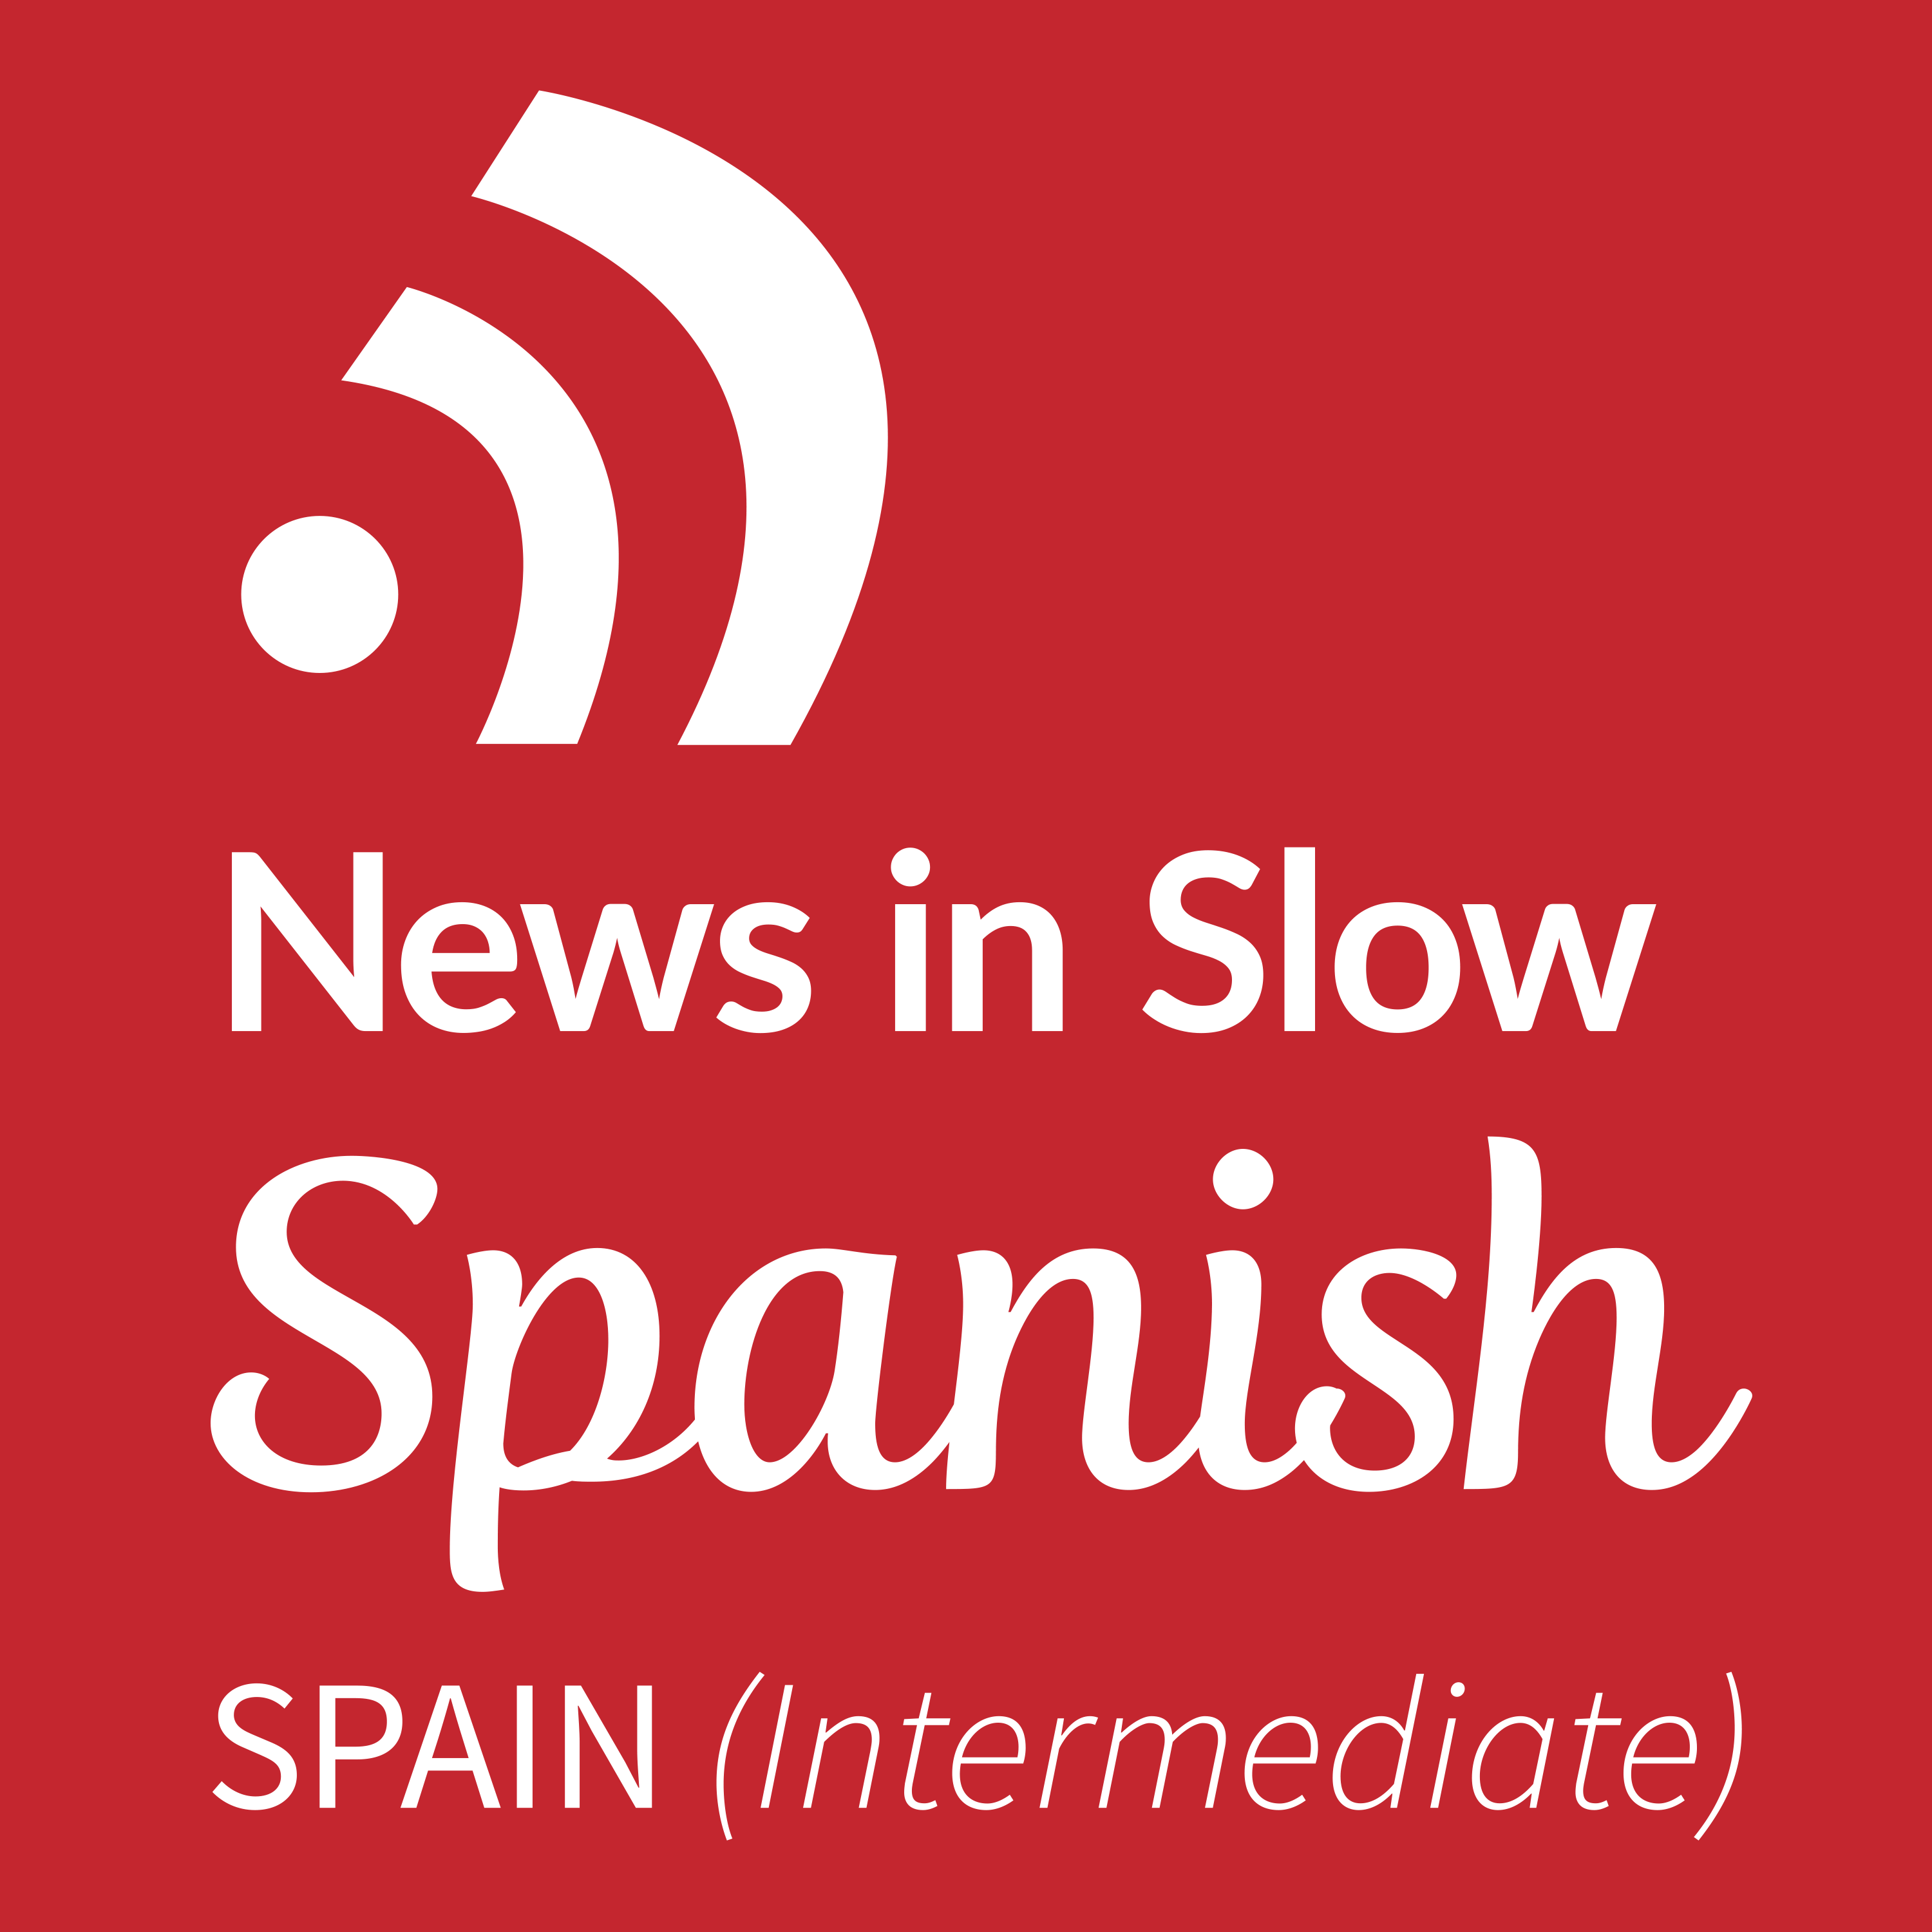 News in Slow Spanish - #407 - Weekly language learning show with discussion of current events